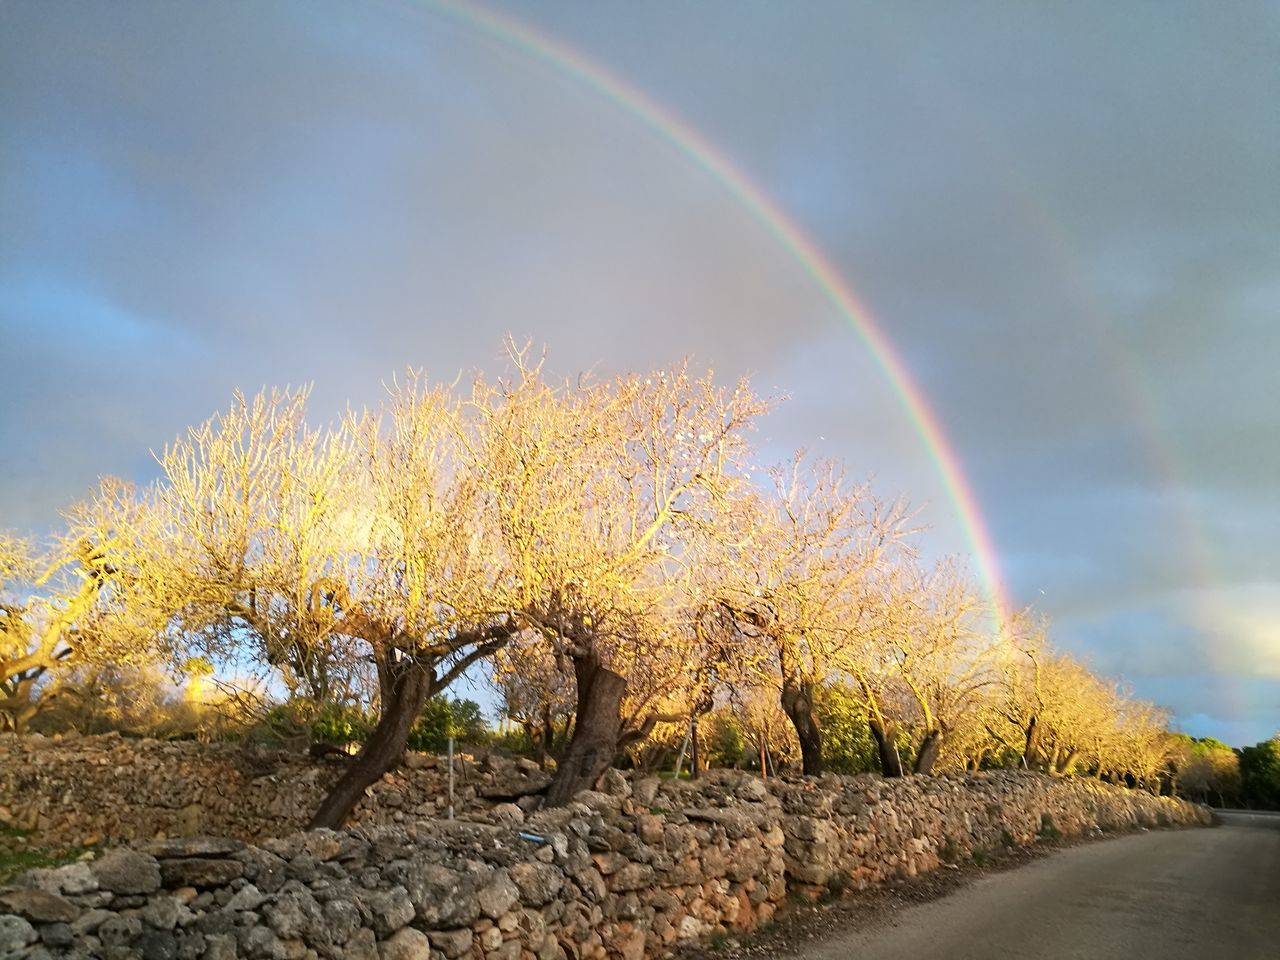 One Rainbow painted with the sun... Nature Beauty In Nature Scenics Outdoors Tranquility Landscape PalmaDiMaiorca GetbetterwithAlex Sunset Nostalgic Scene Sunlight Originalpicture Growth